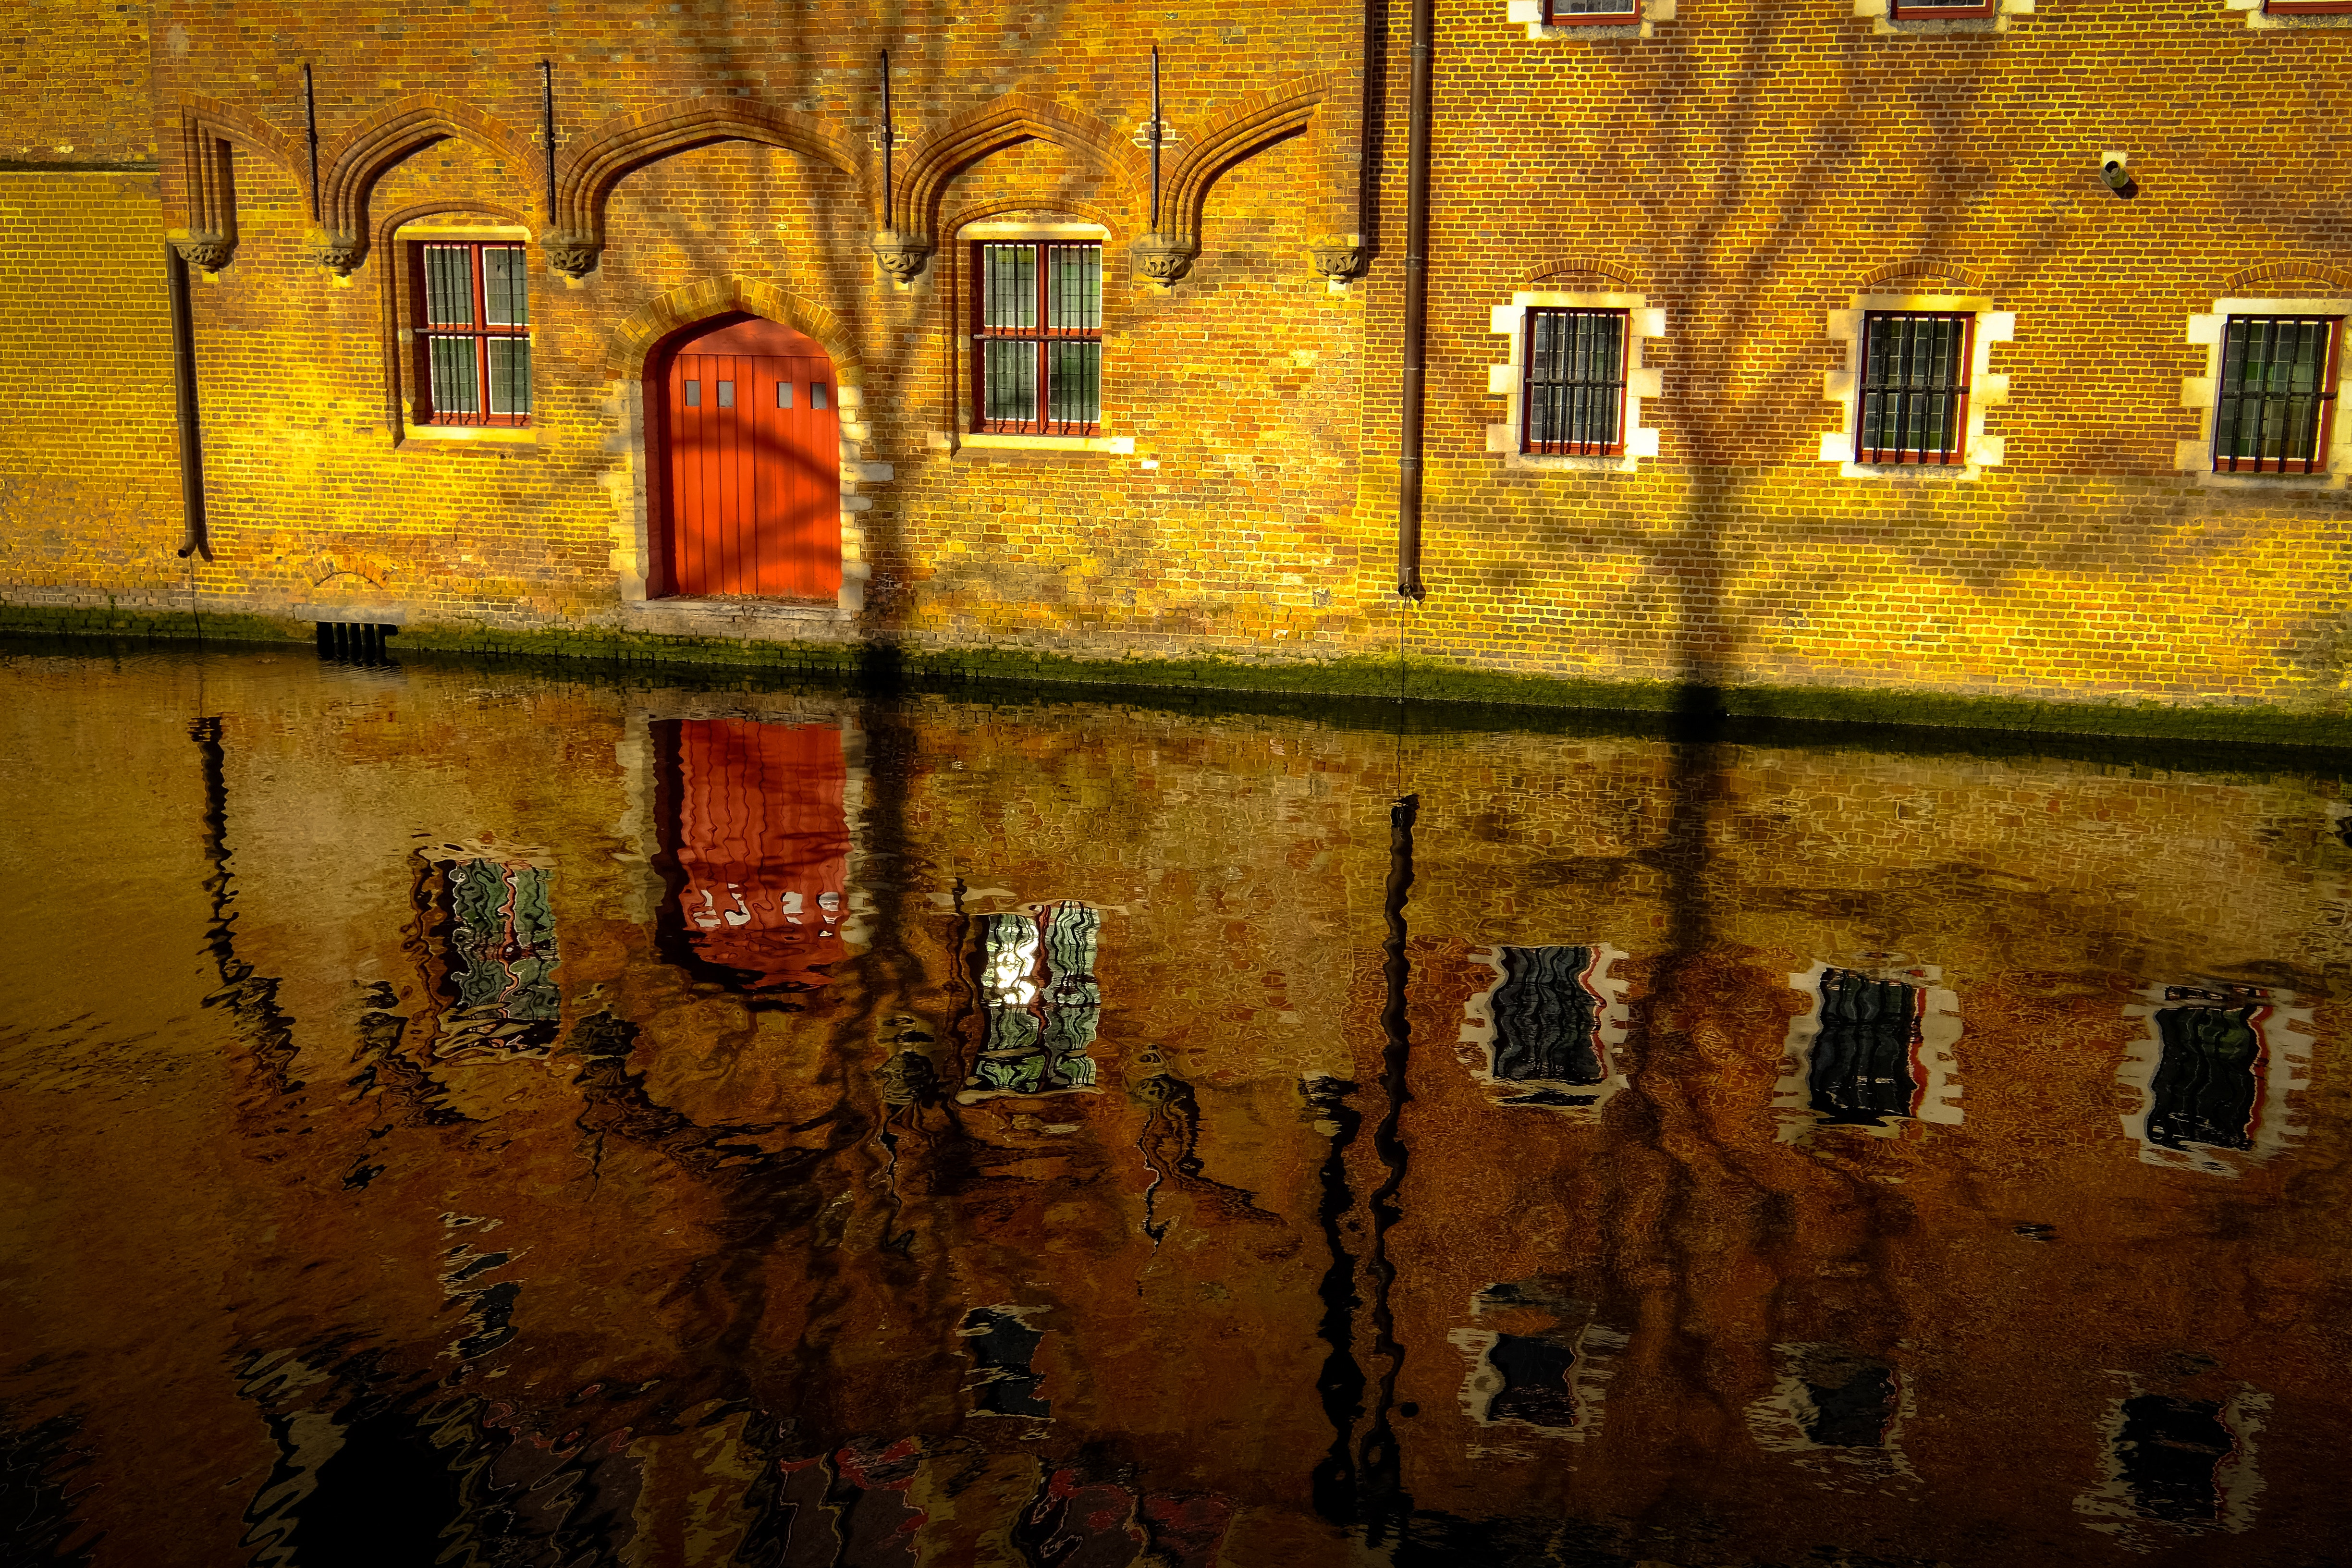 House Reflection, Abandoned, Old, Water, Wall, HQ Photo